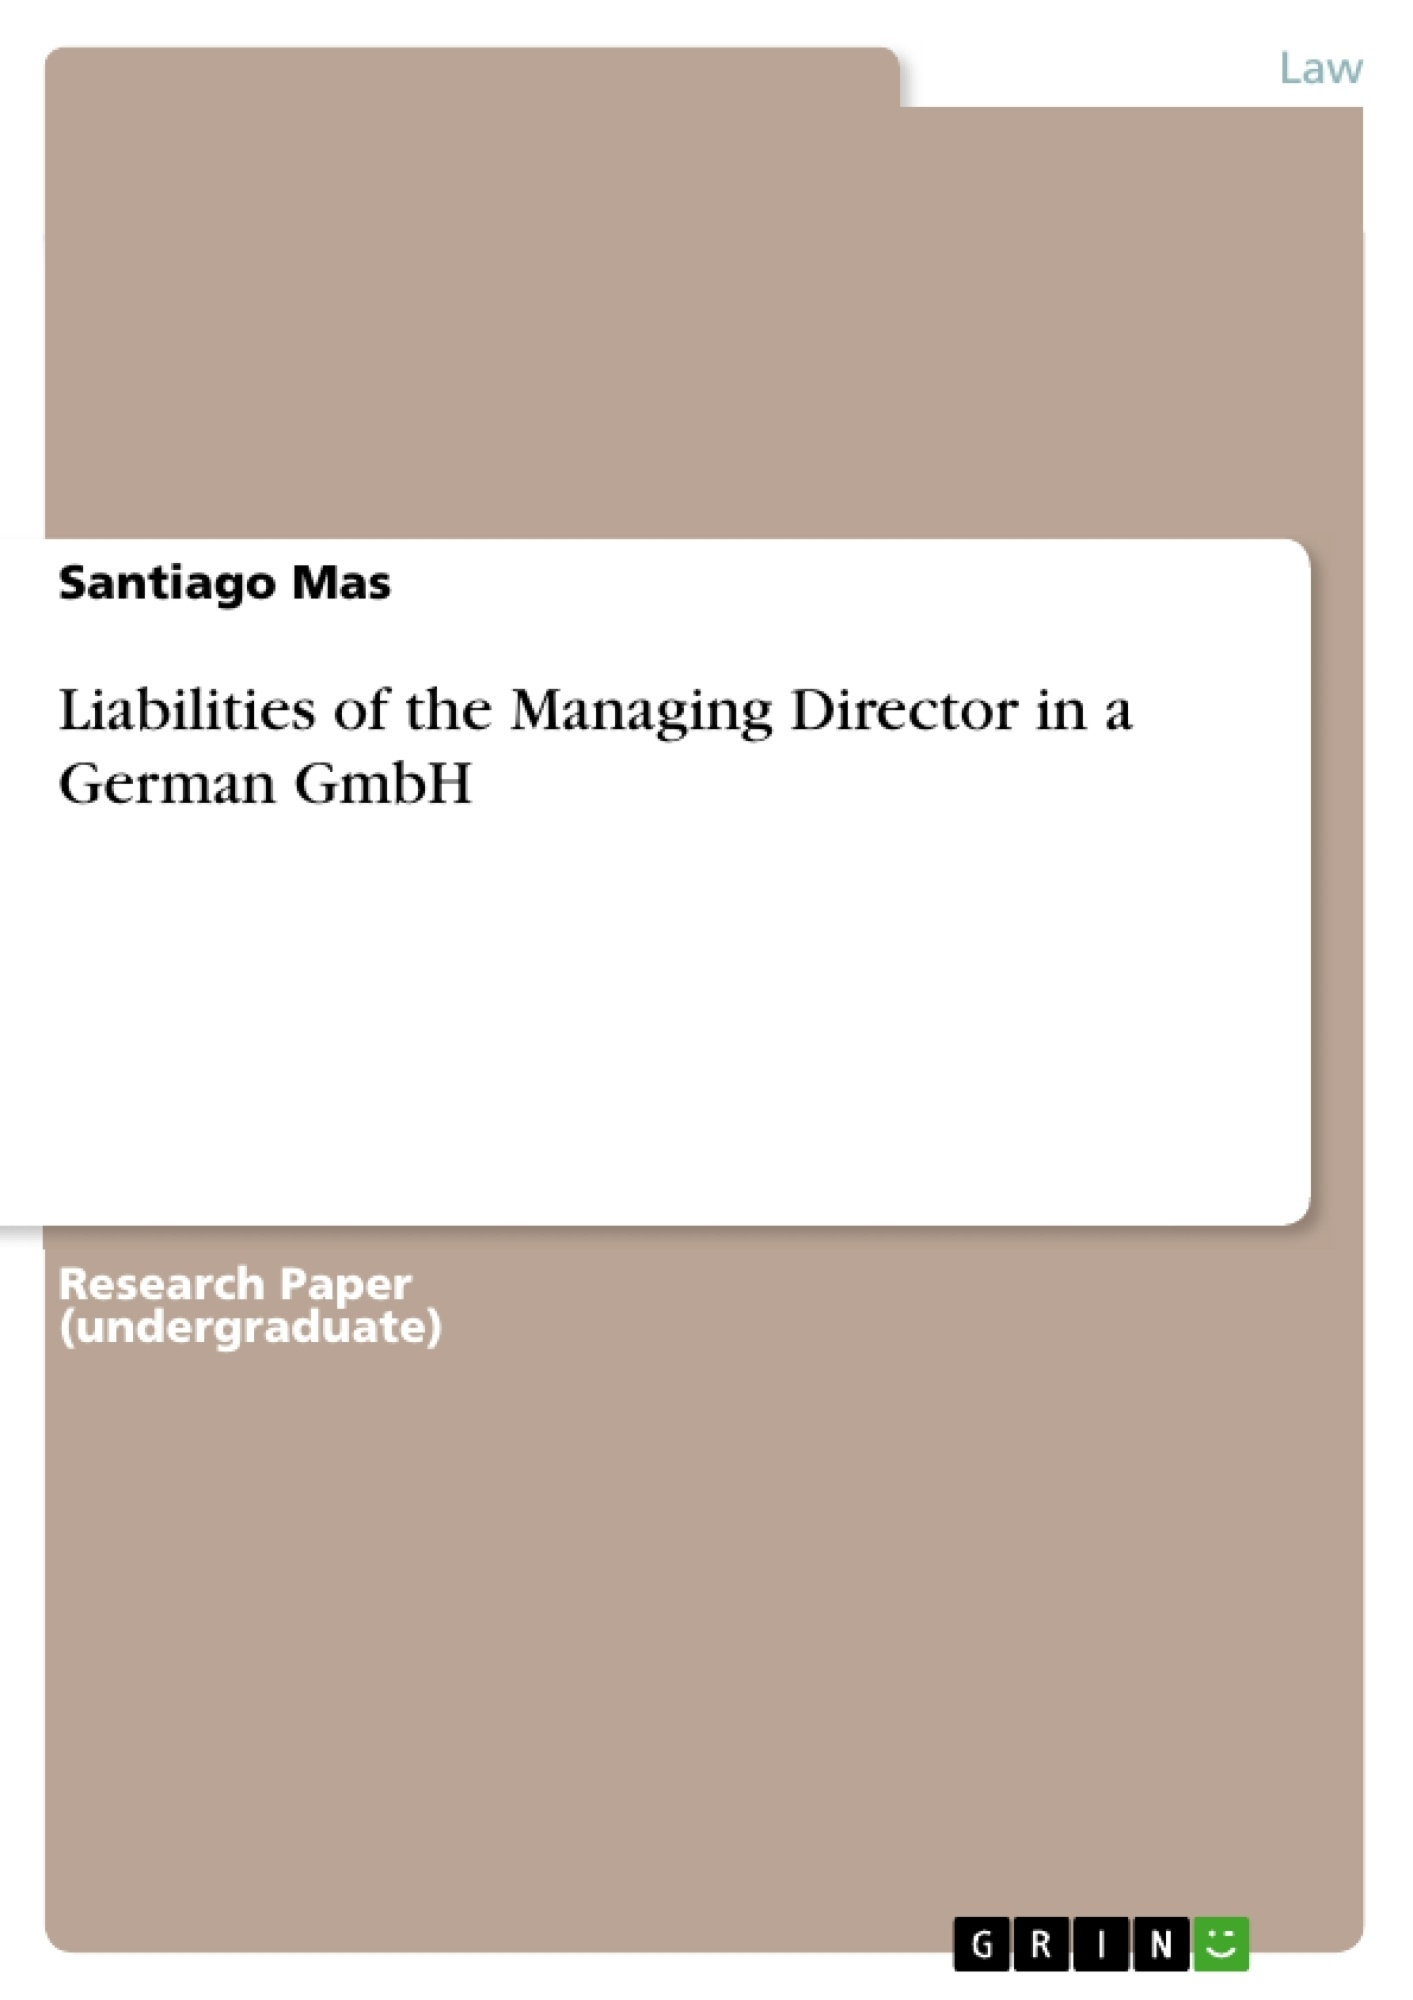 Title: Liabilities of the Managing Director in a German GmbH